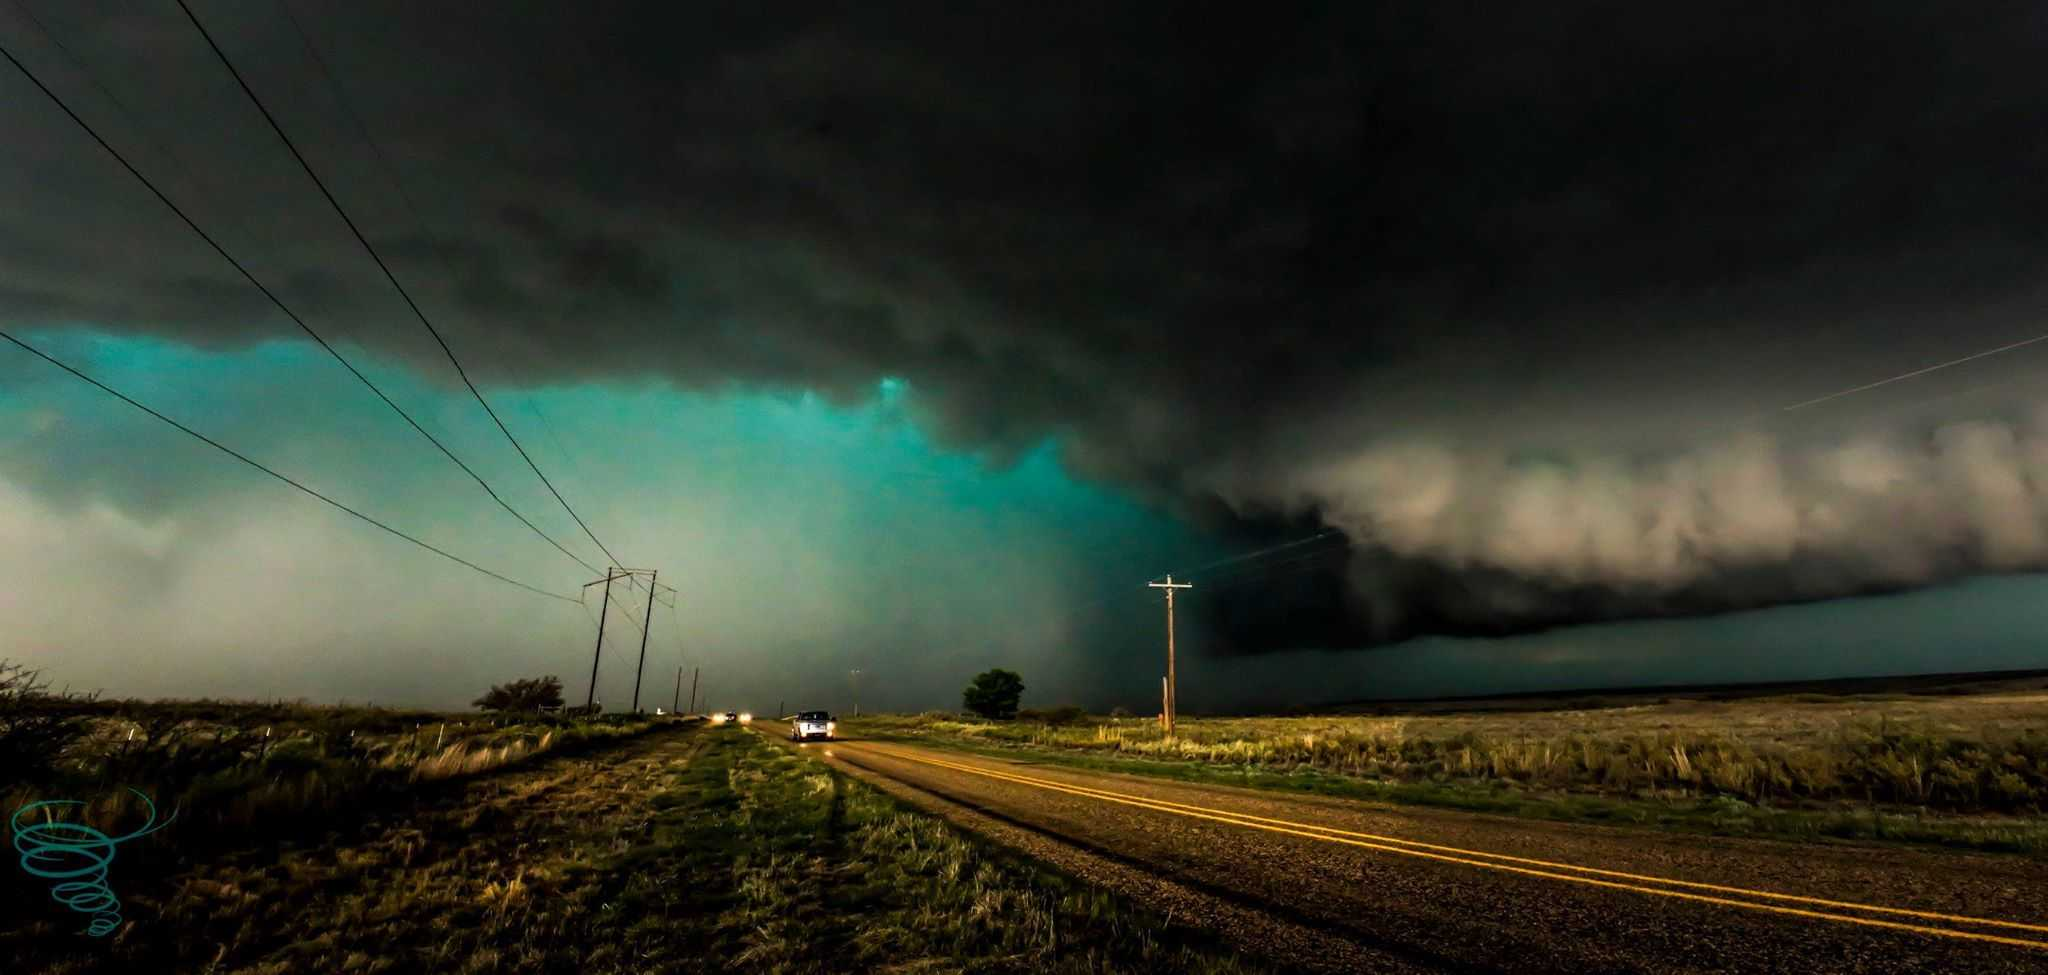 A tornado warned HP supercell bears down on Kellerville, Texas as storm chasers race to stay ahead of the storm's rain/hail core on April 16, 2015.